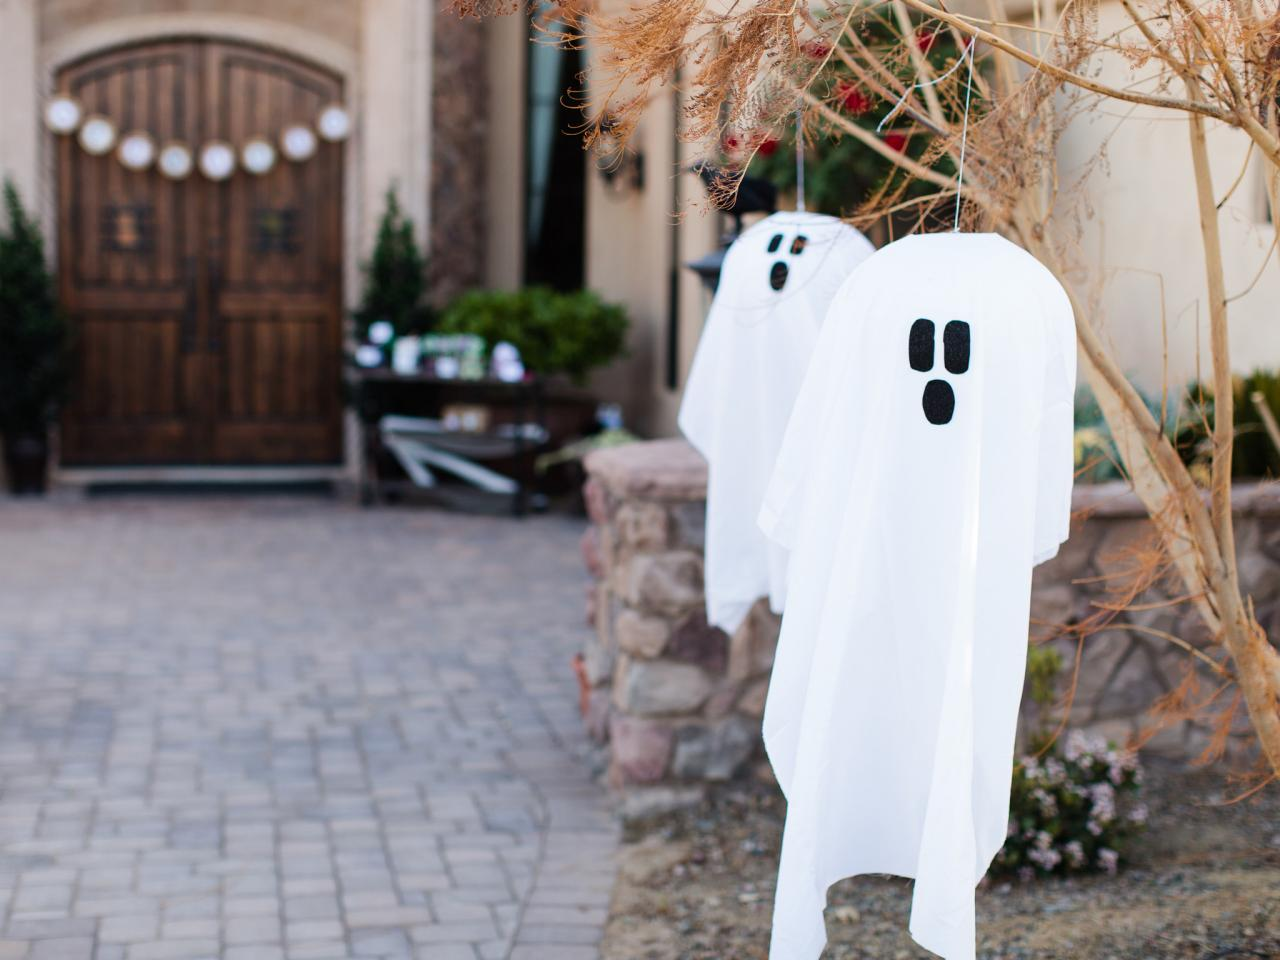 Homemade spooky halloween decorations - Outdoor Halloween Decoration Hanging Ghosts